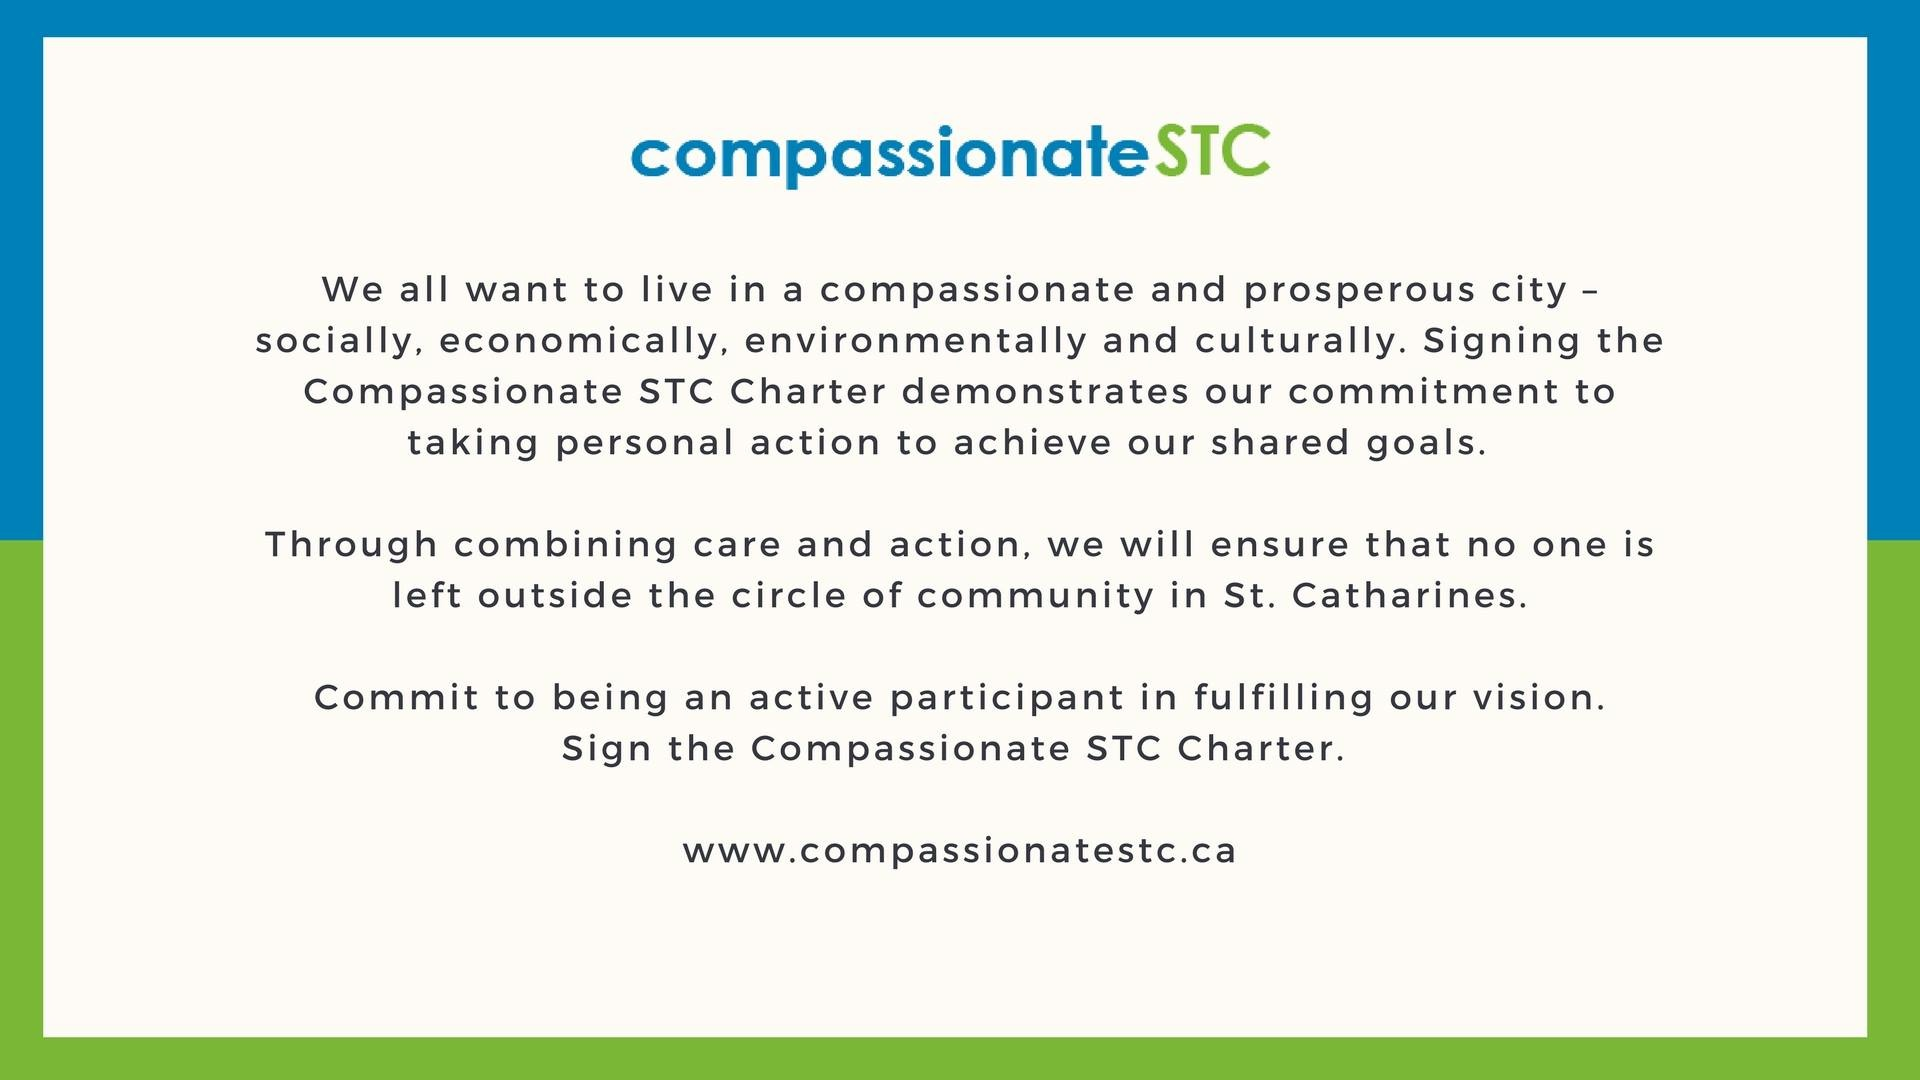 St. Catharines: A Compassionate City